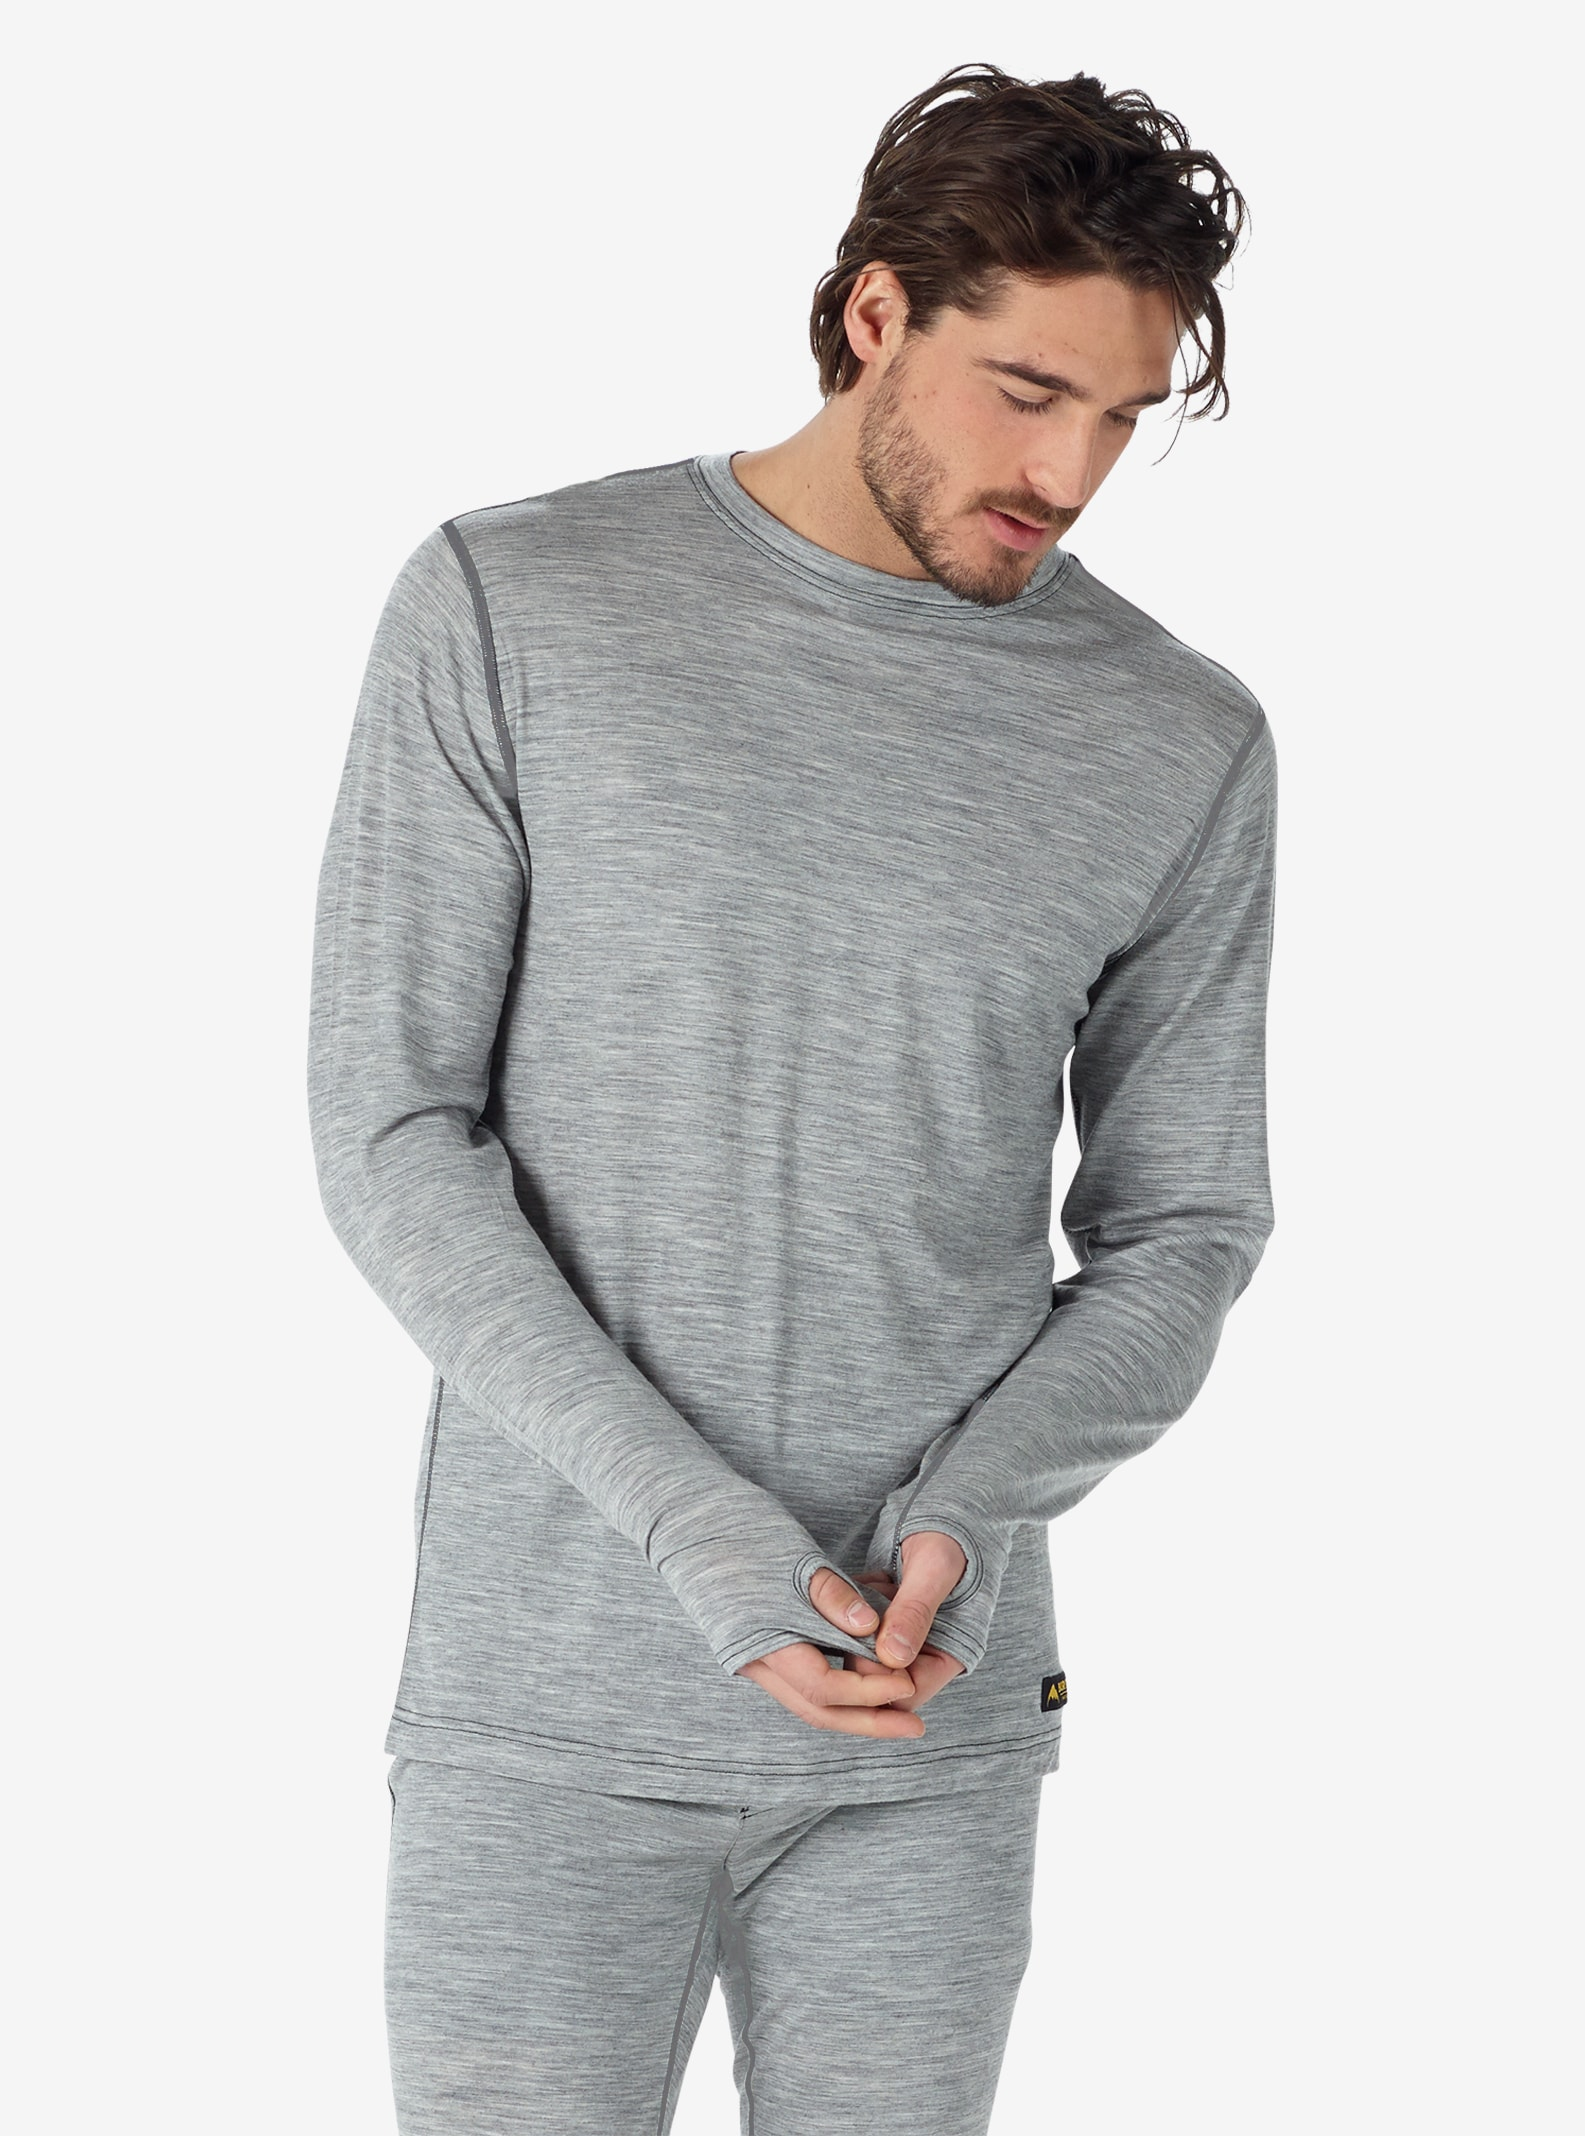 Men's Burton Midweight Base Layer Merino Crew shown in Monument Heather